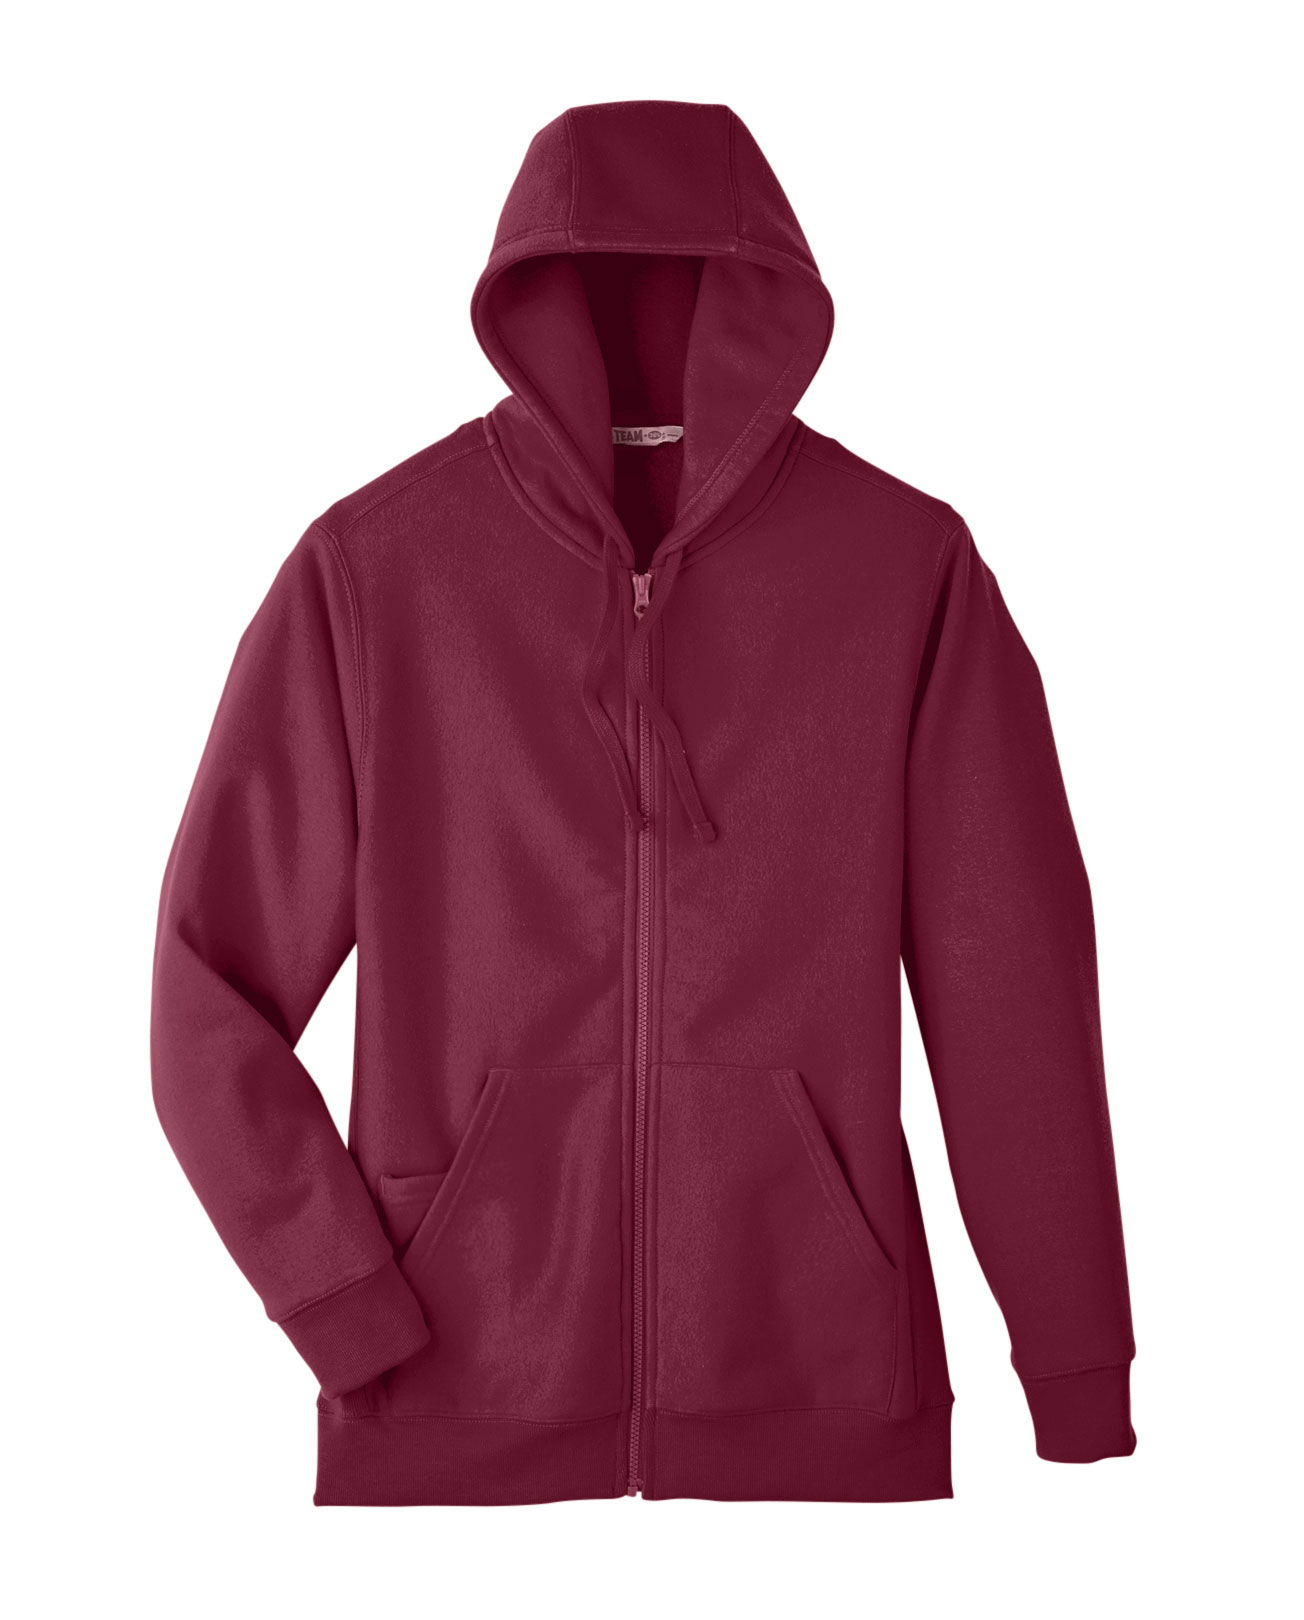 Team 365 Mens Zone HydroSport™ Heavyweight Full-Zip Hooded Sweatshirt